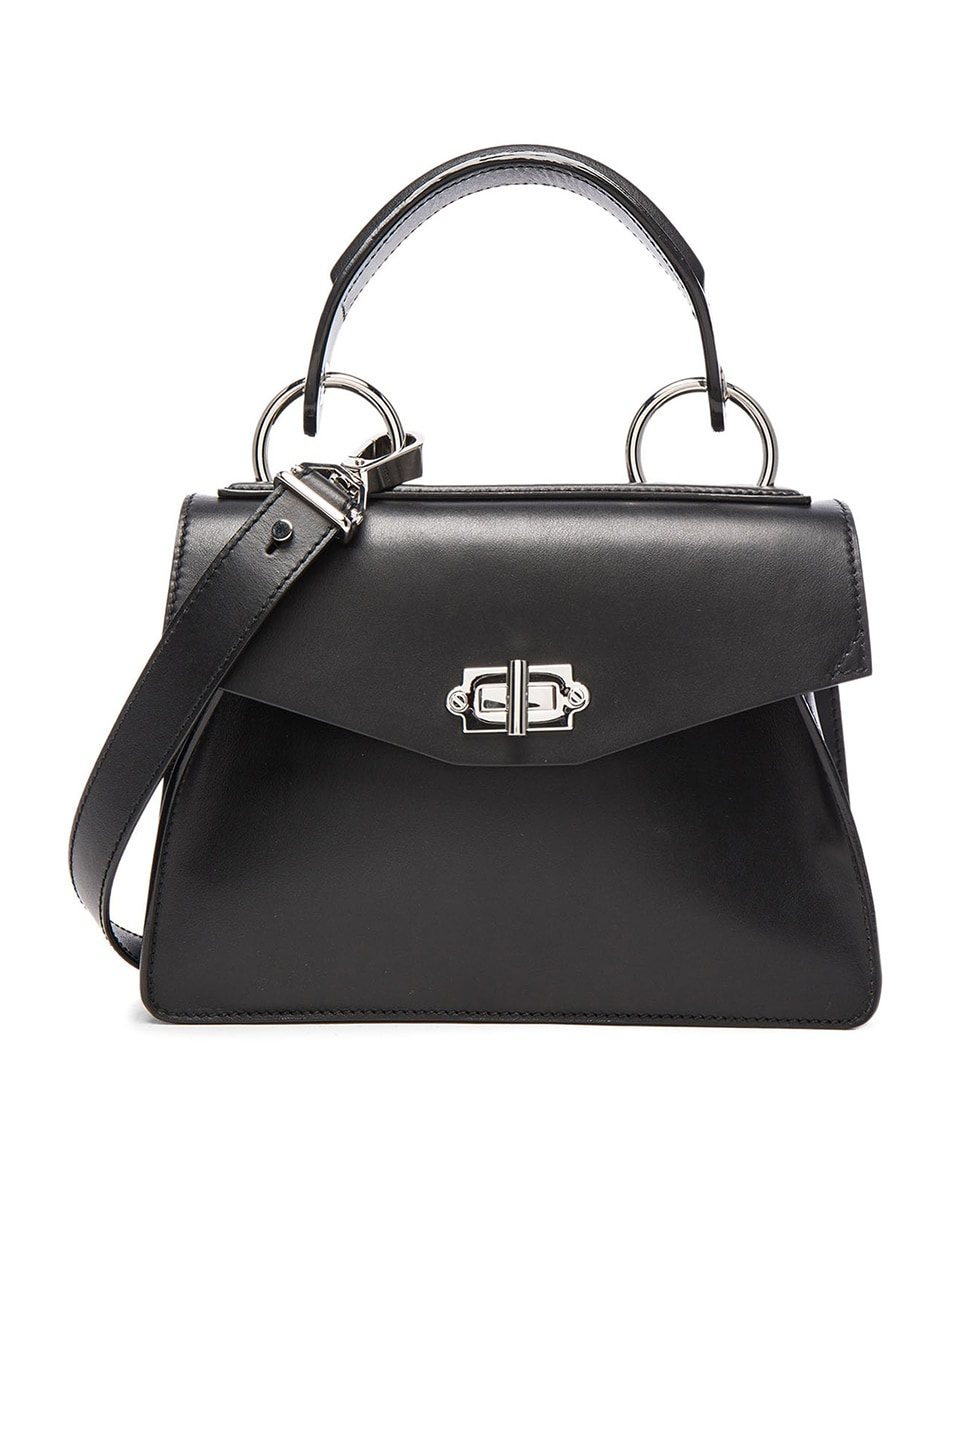 Small Hava Top Handle - Black Proenza Schouler i1esM99